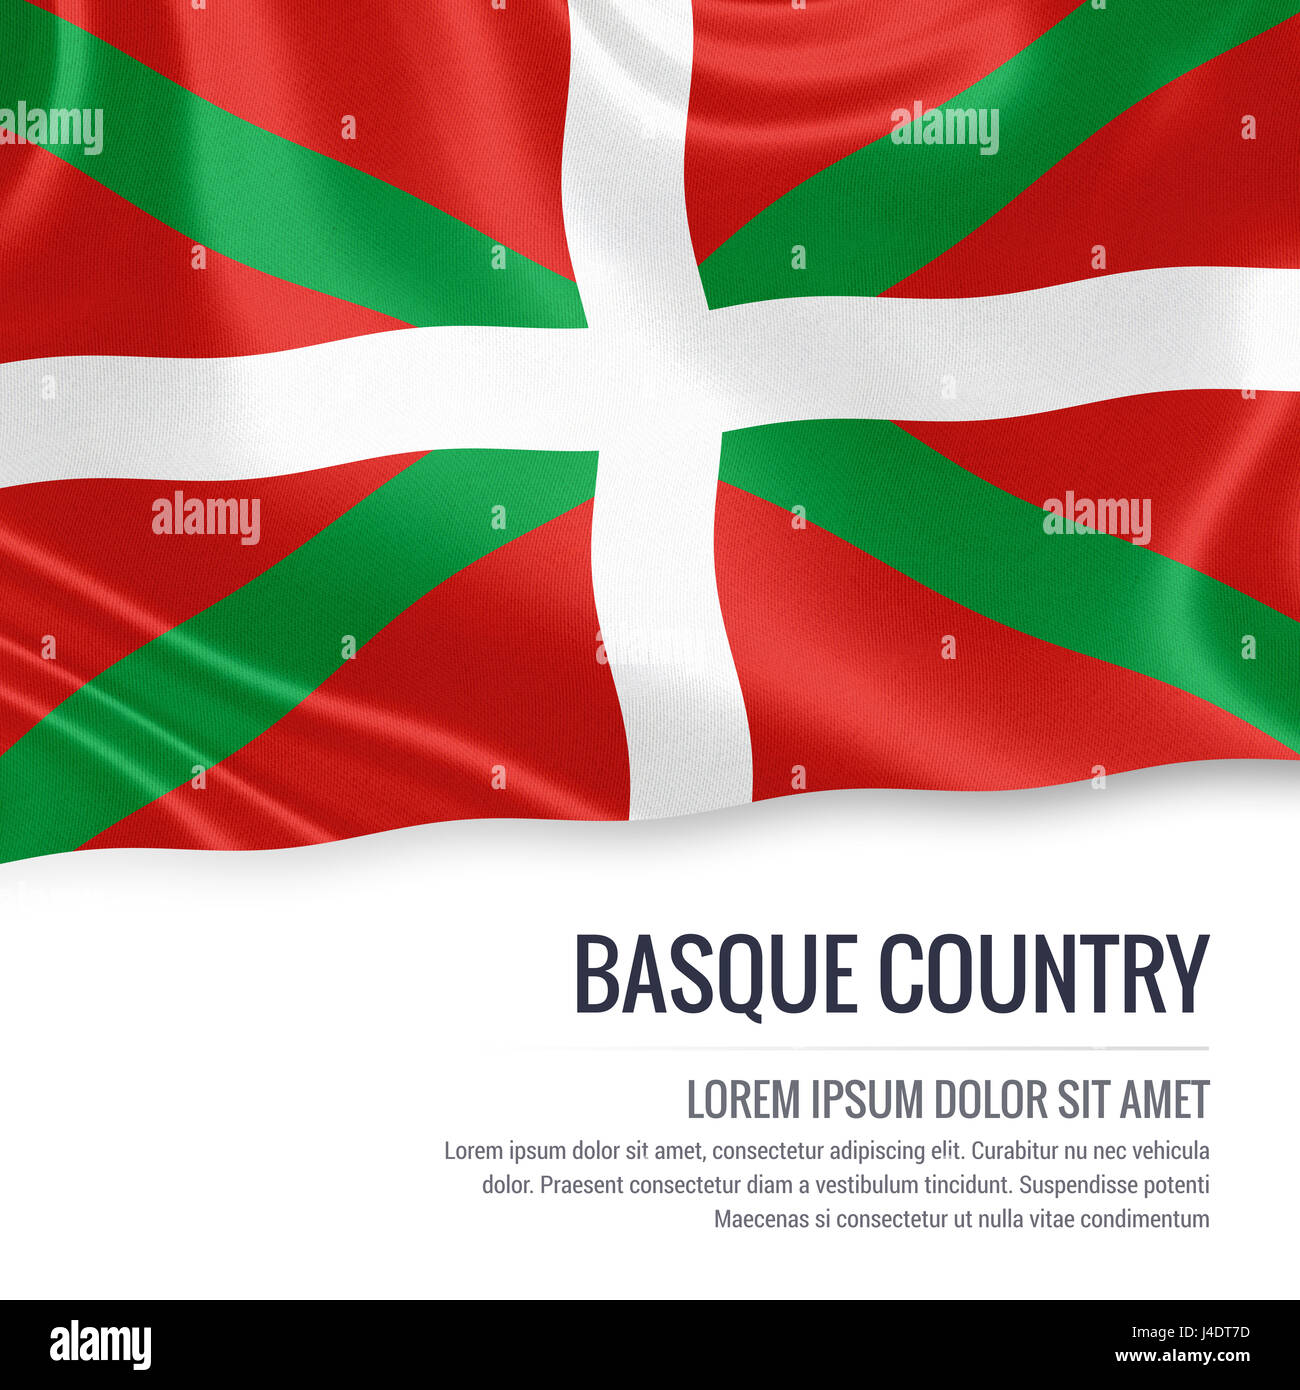 656798c123 Spanish state Basque Country flag waving on an isolated white background.  State name and the